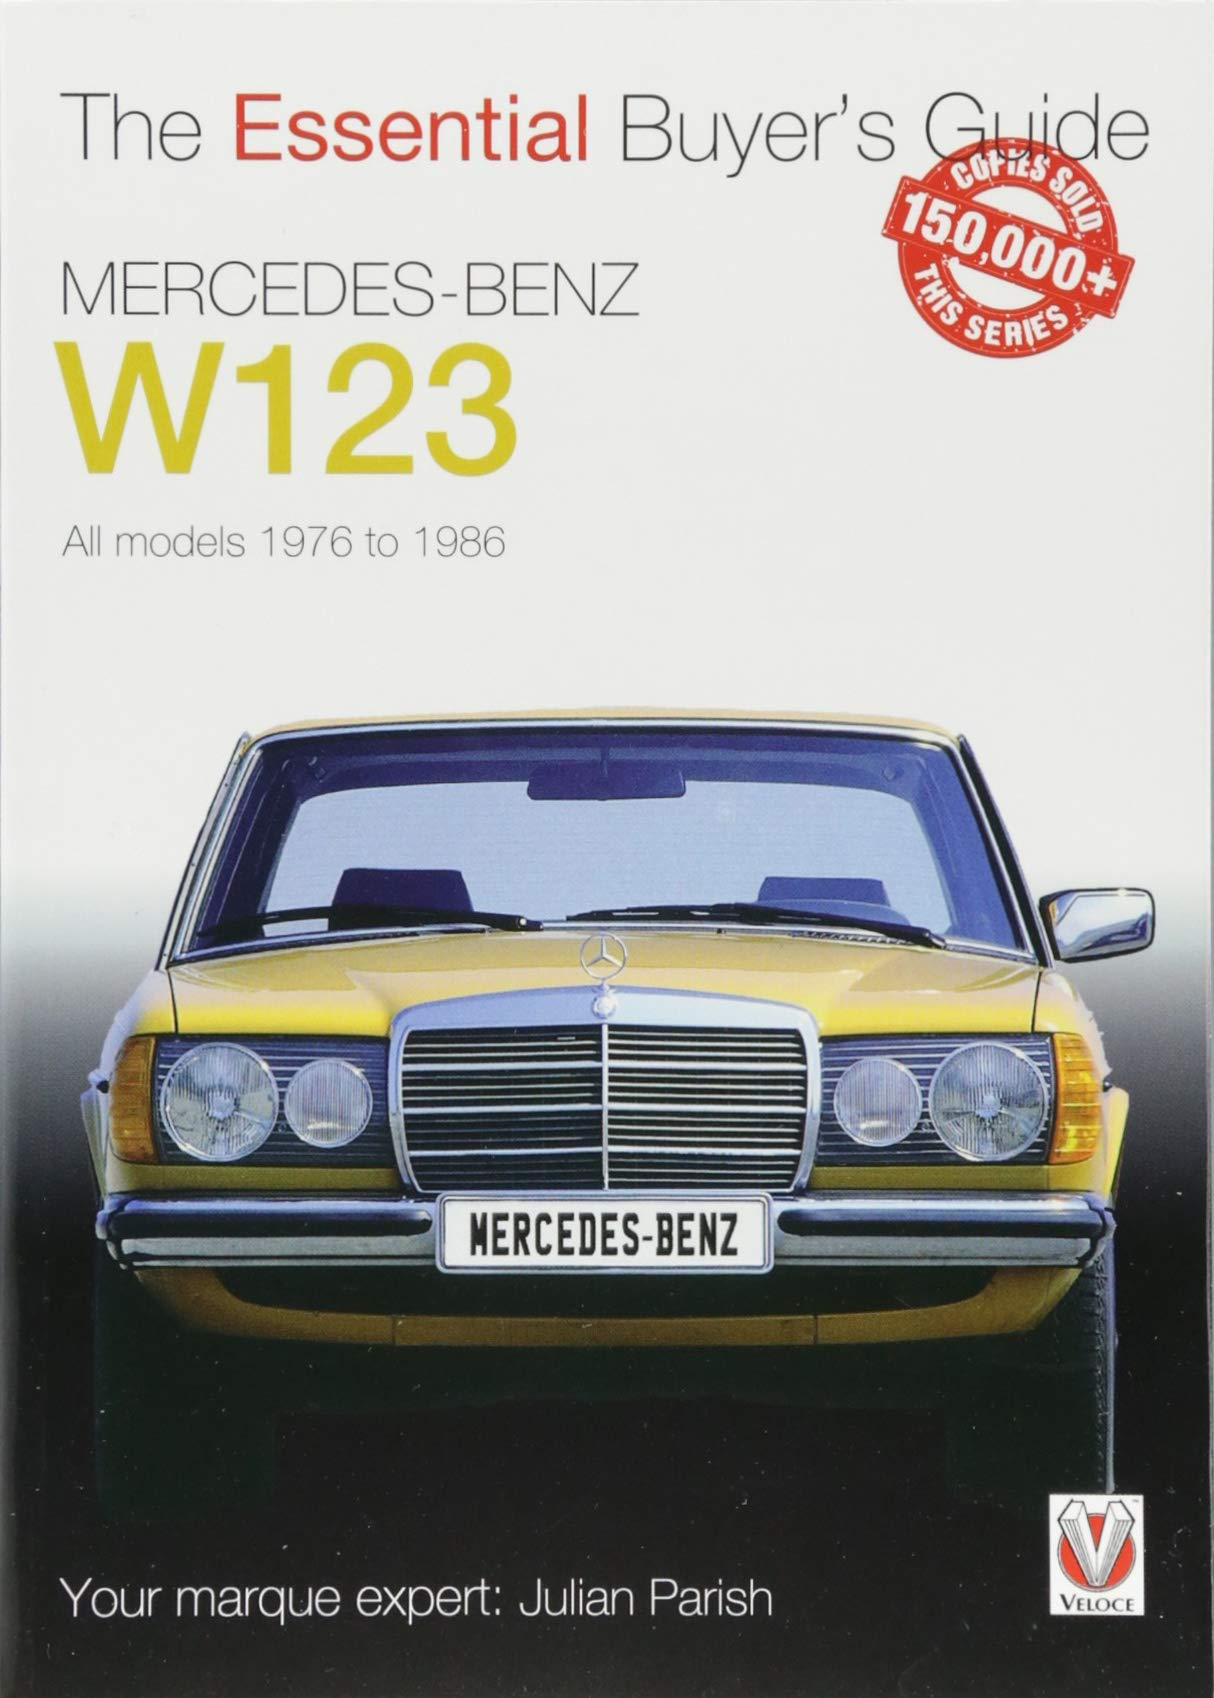 Mercedes-Benz W123 All models 1976 to 1986: Essential Buyer's Guide series:  Amazon.co.uk: Julian Parish: 9781845849269: Books